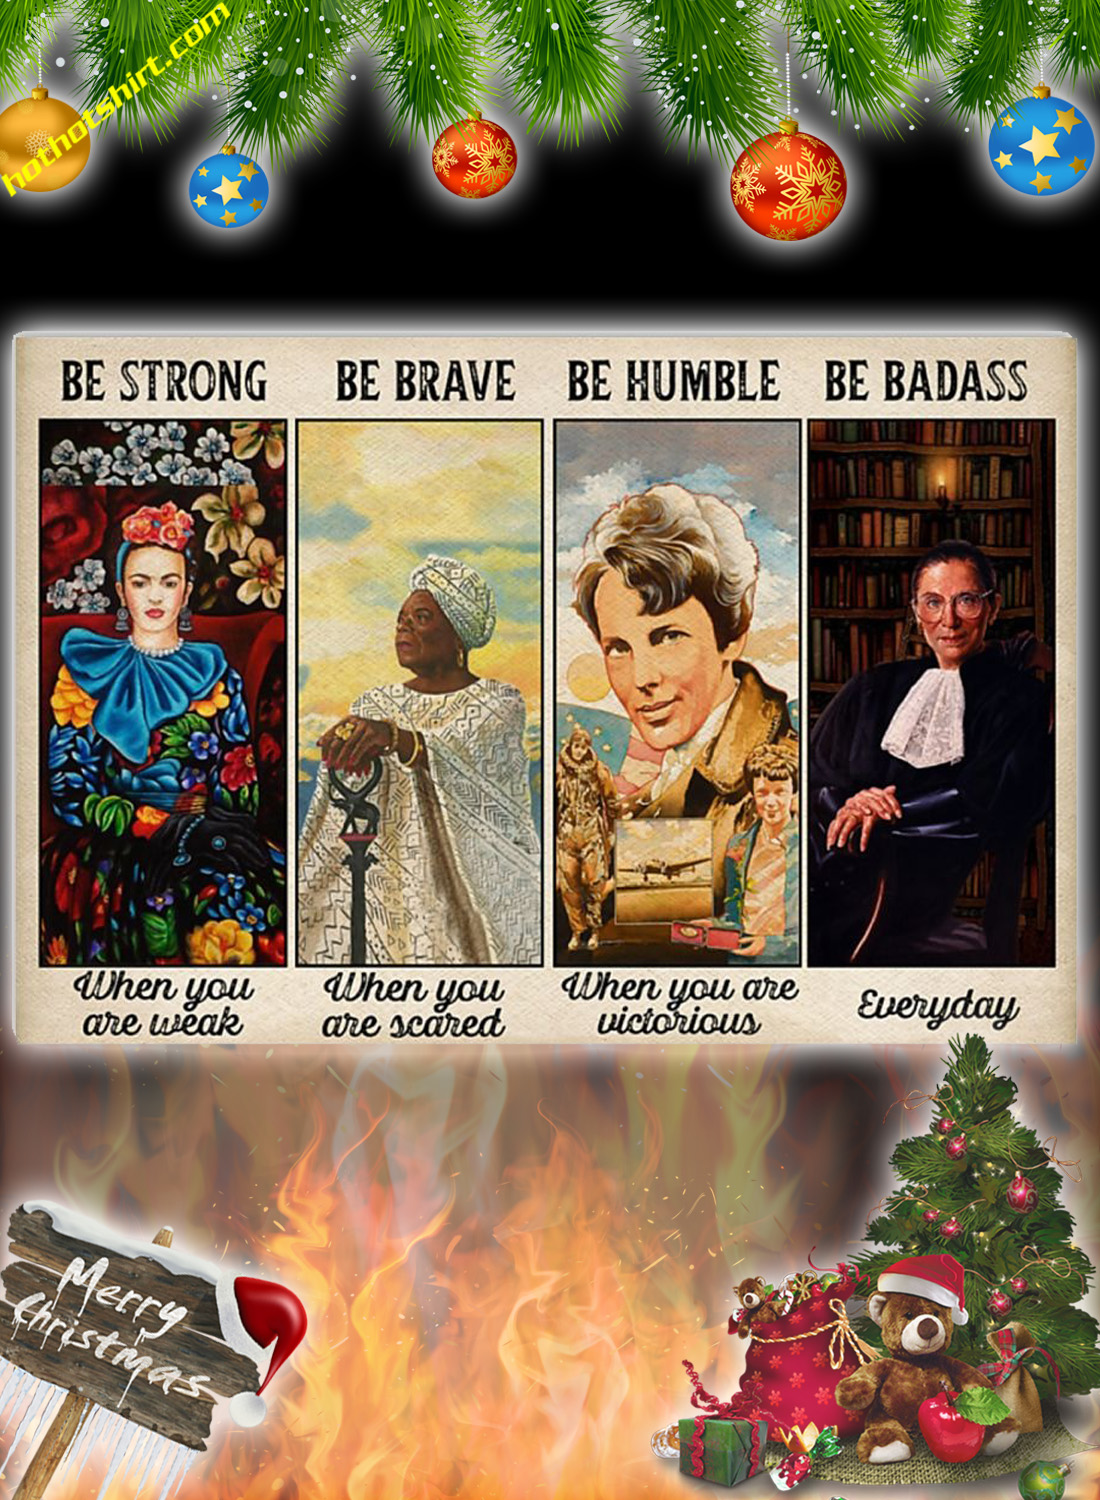 Feminist Be strong be brave be humble poster 1